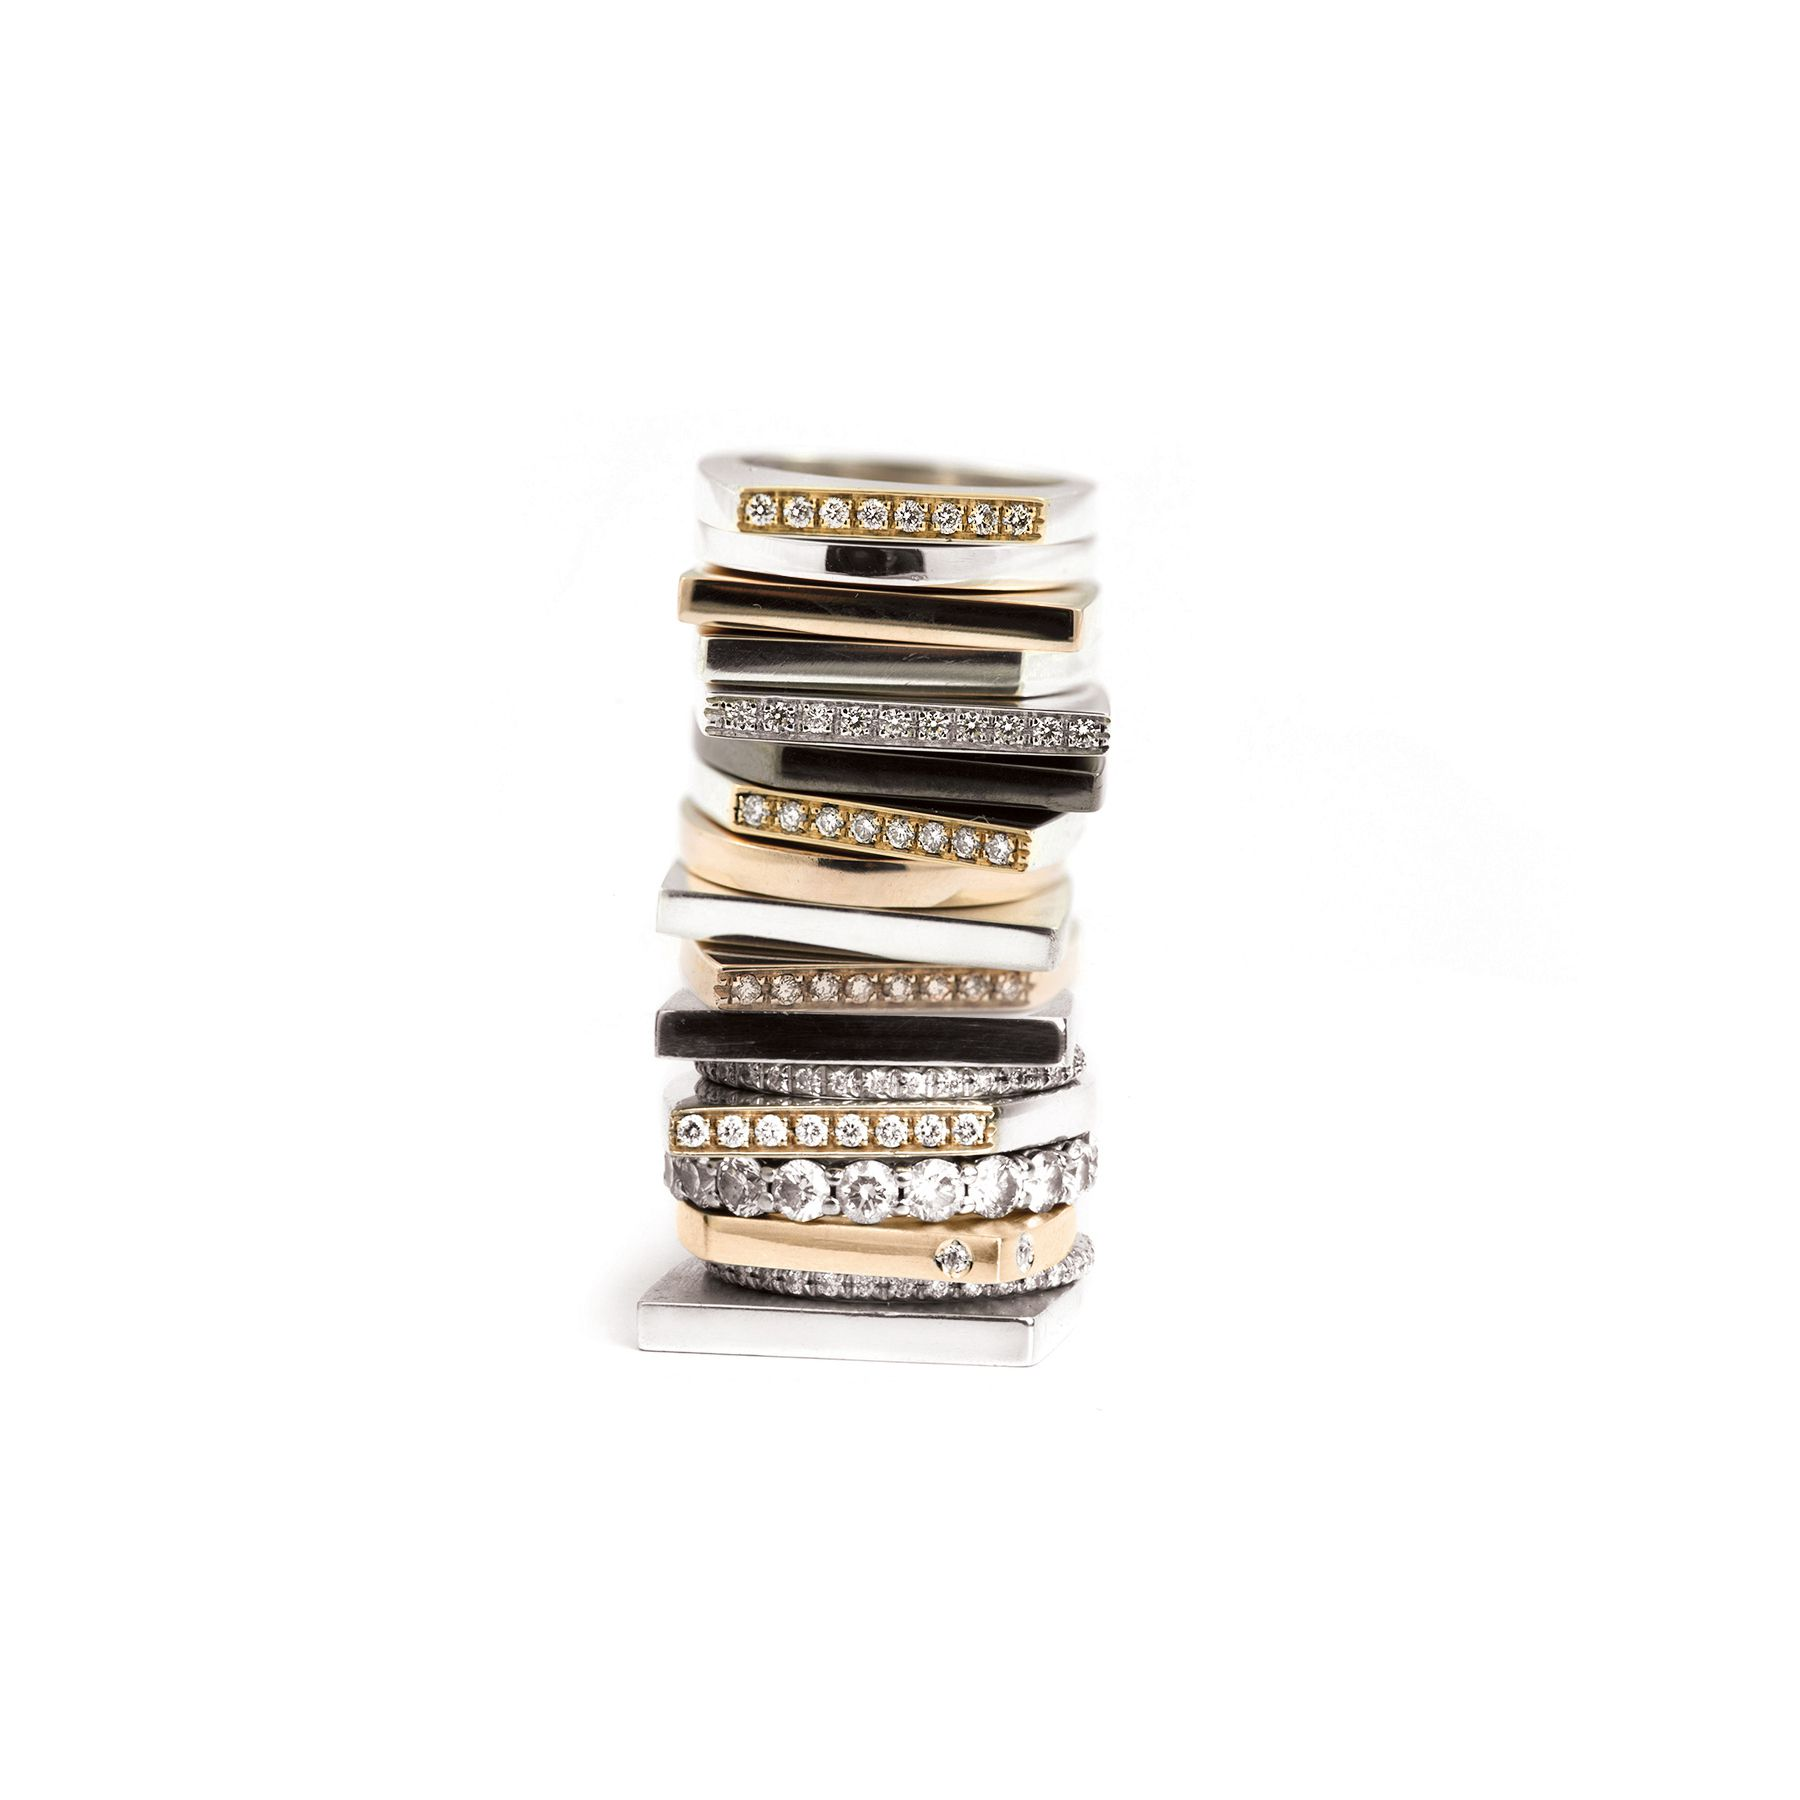 Modular 'Congiunzioni' rings Rings in gold, silver and bronze